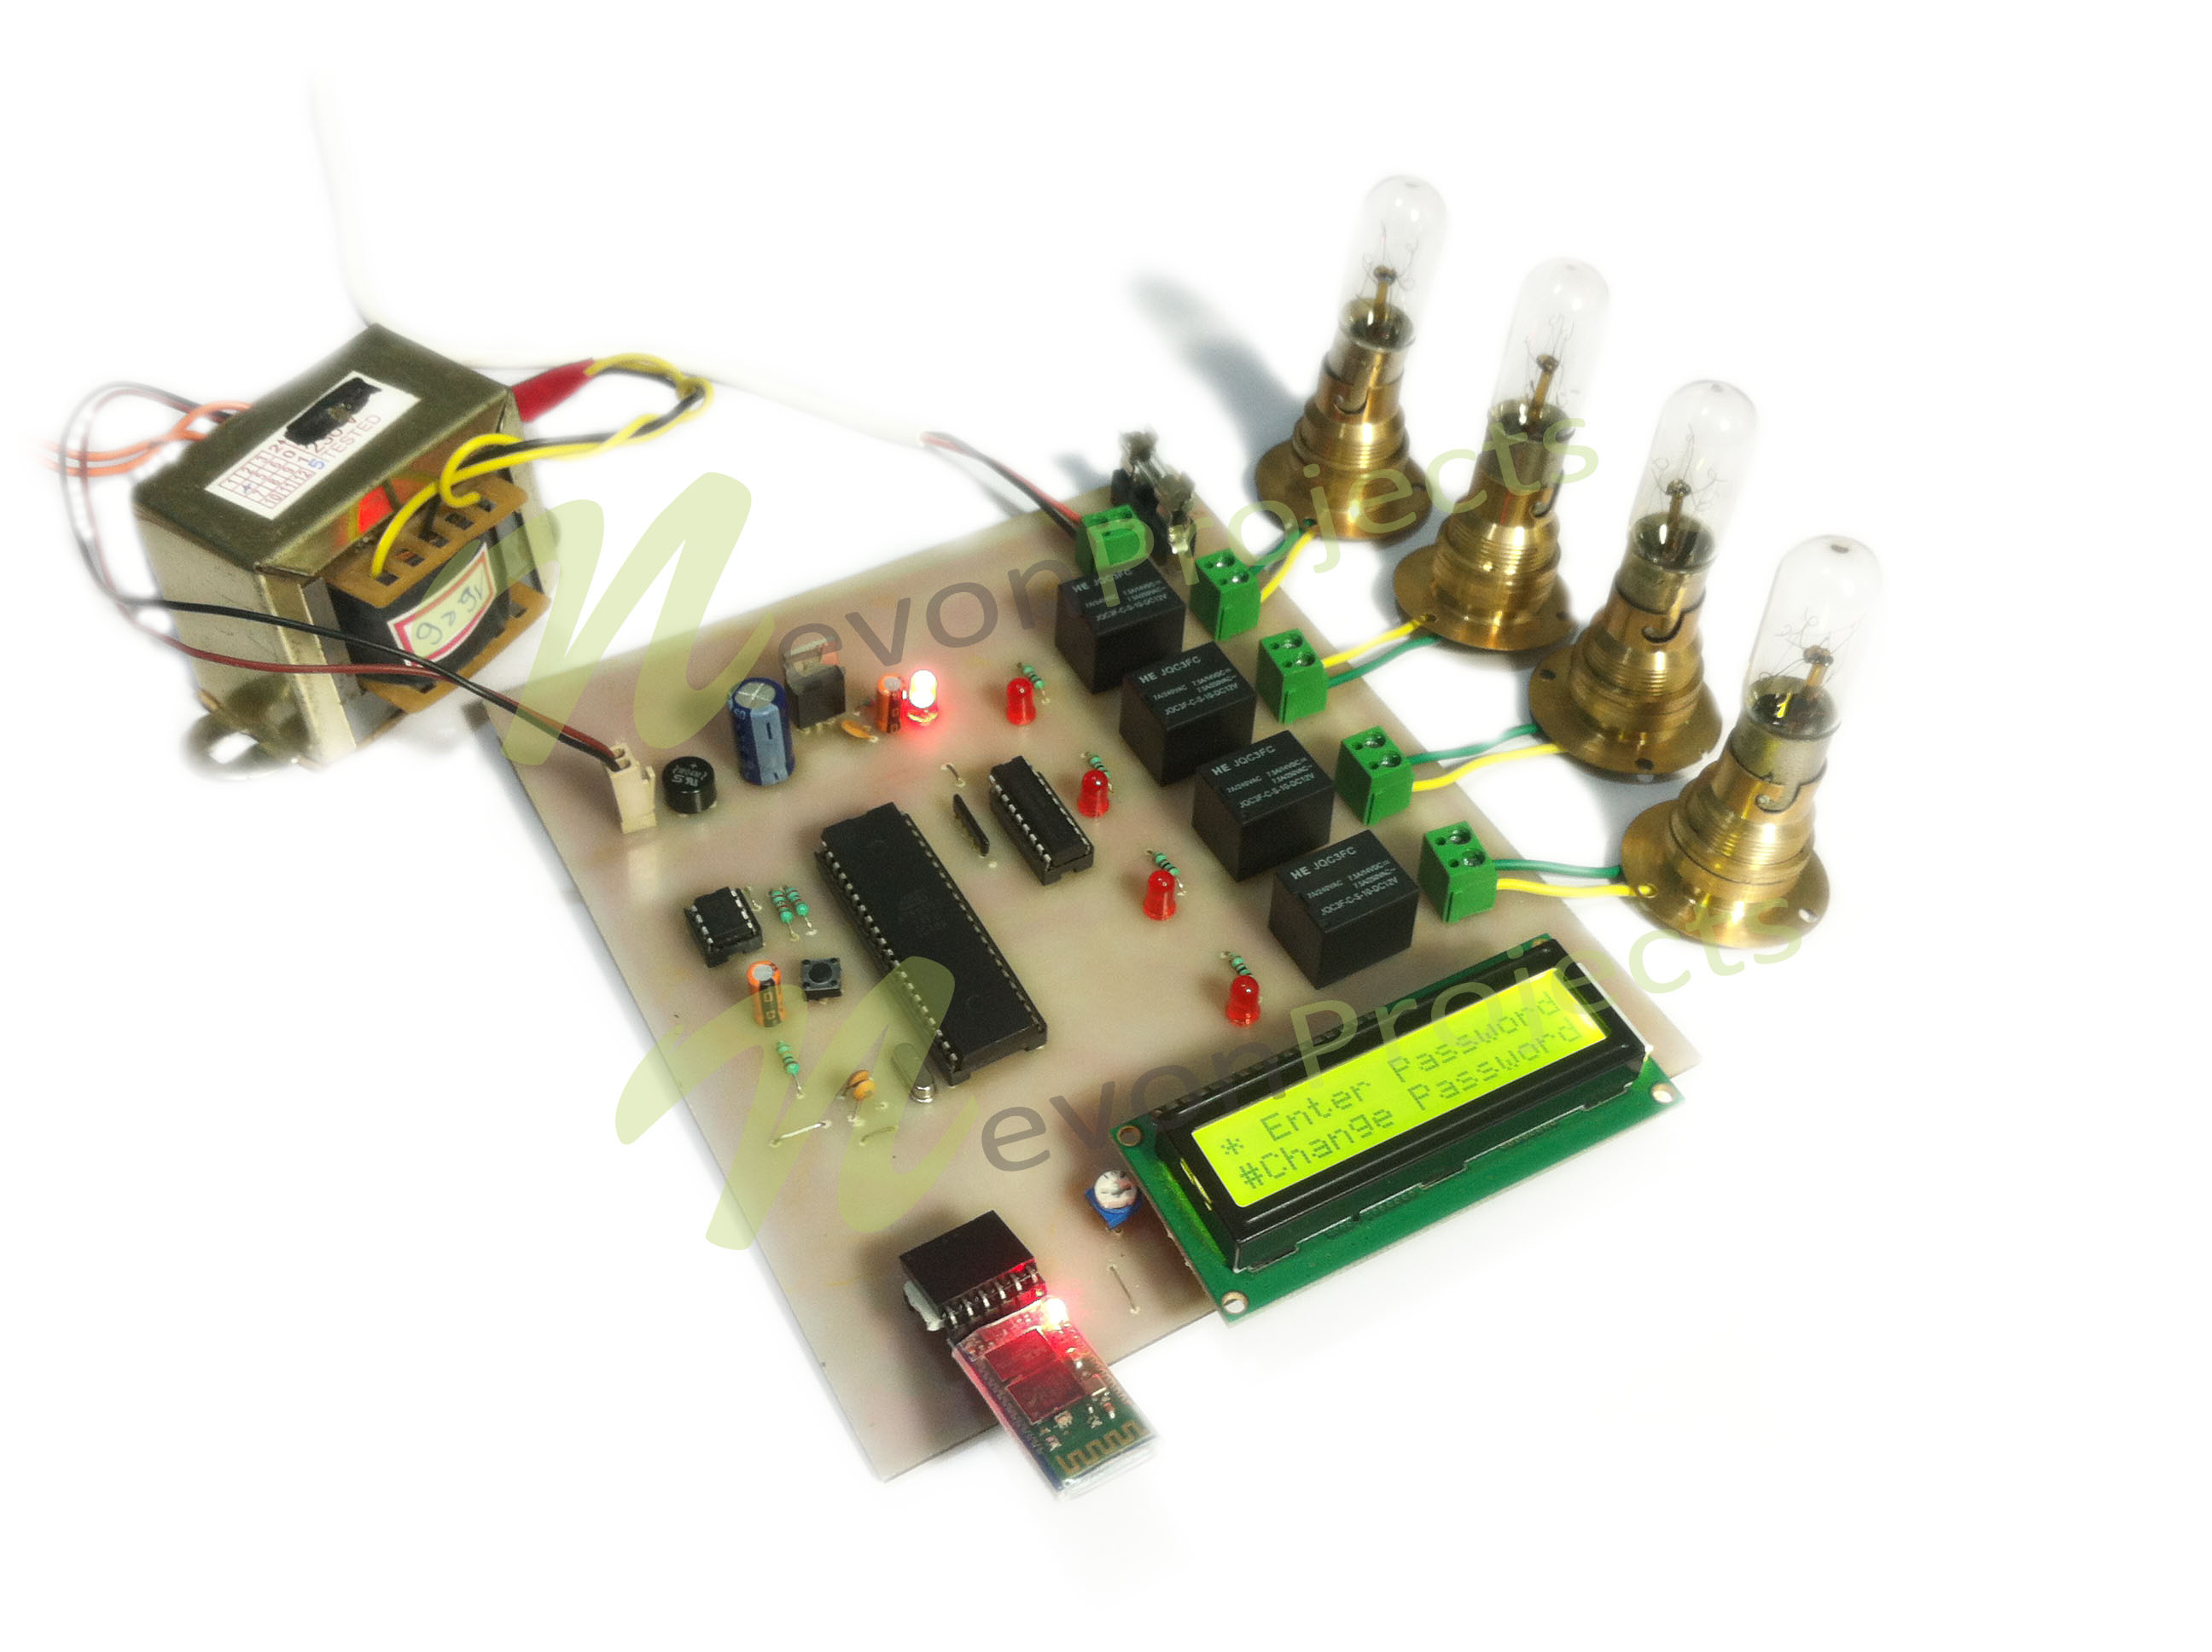 Android Circuit Breaker Project Nevonprojects Wifi Based On